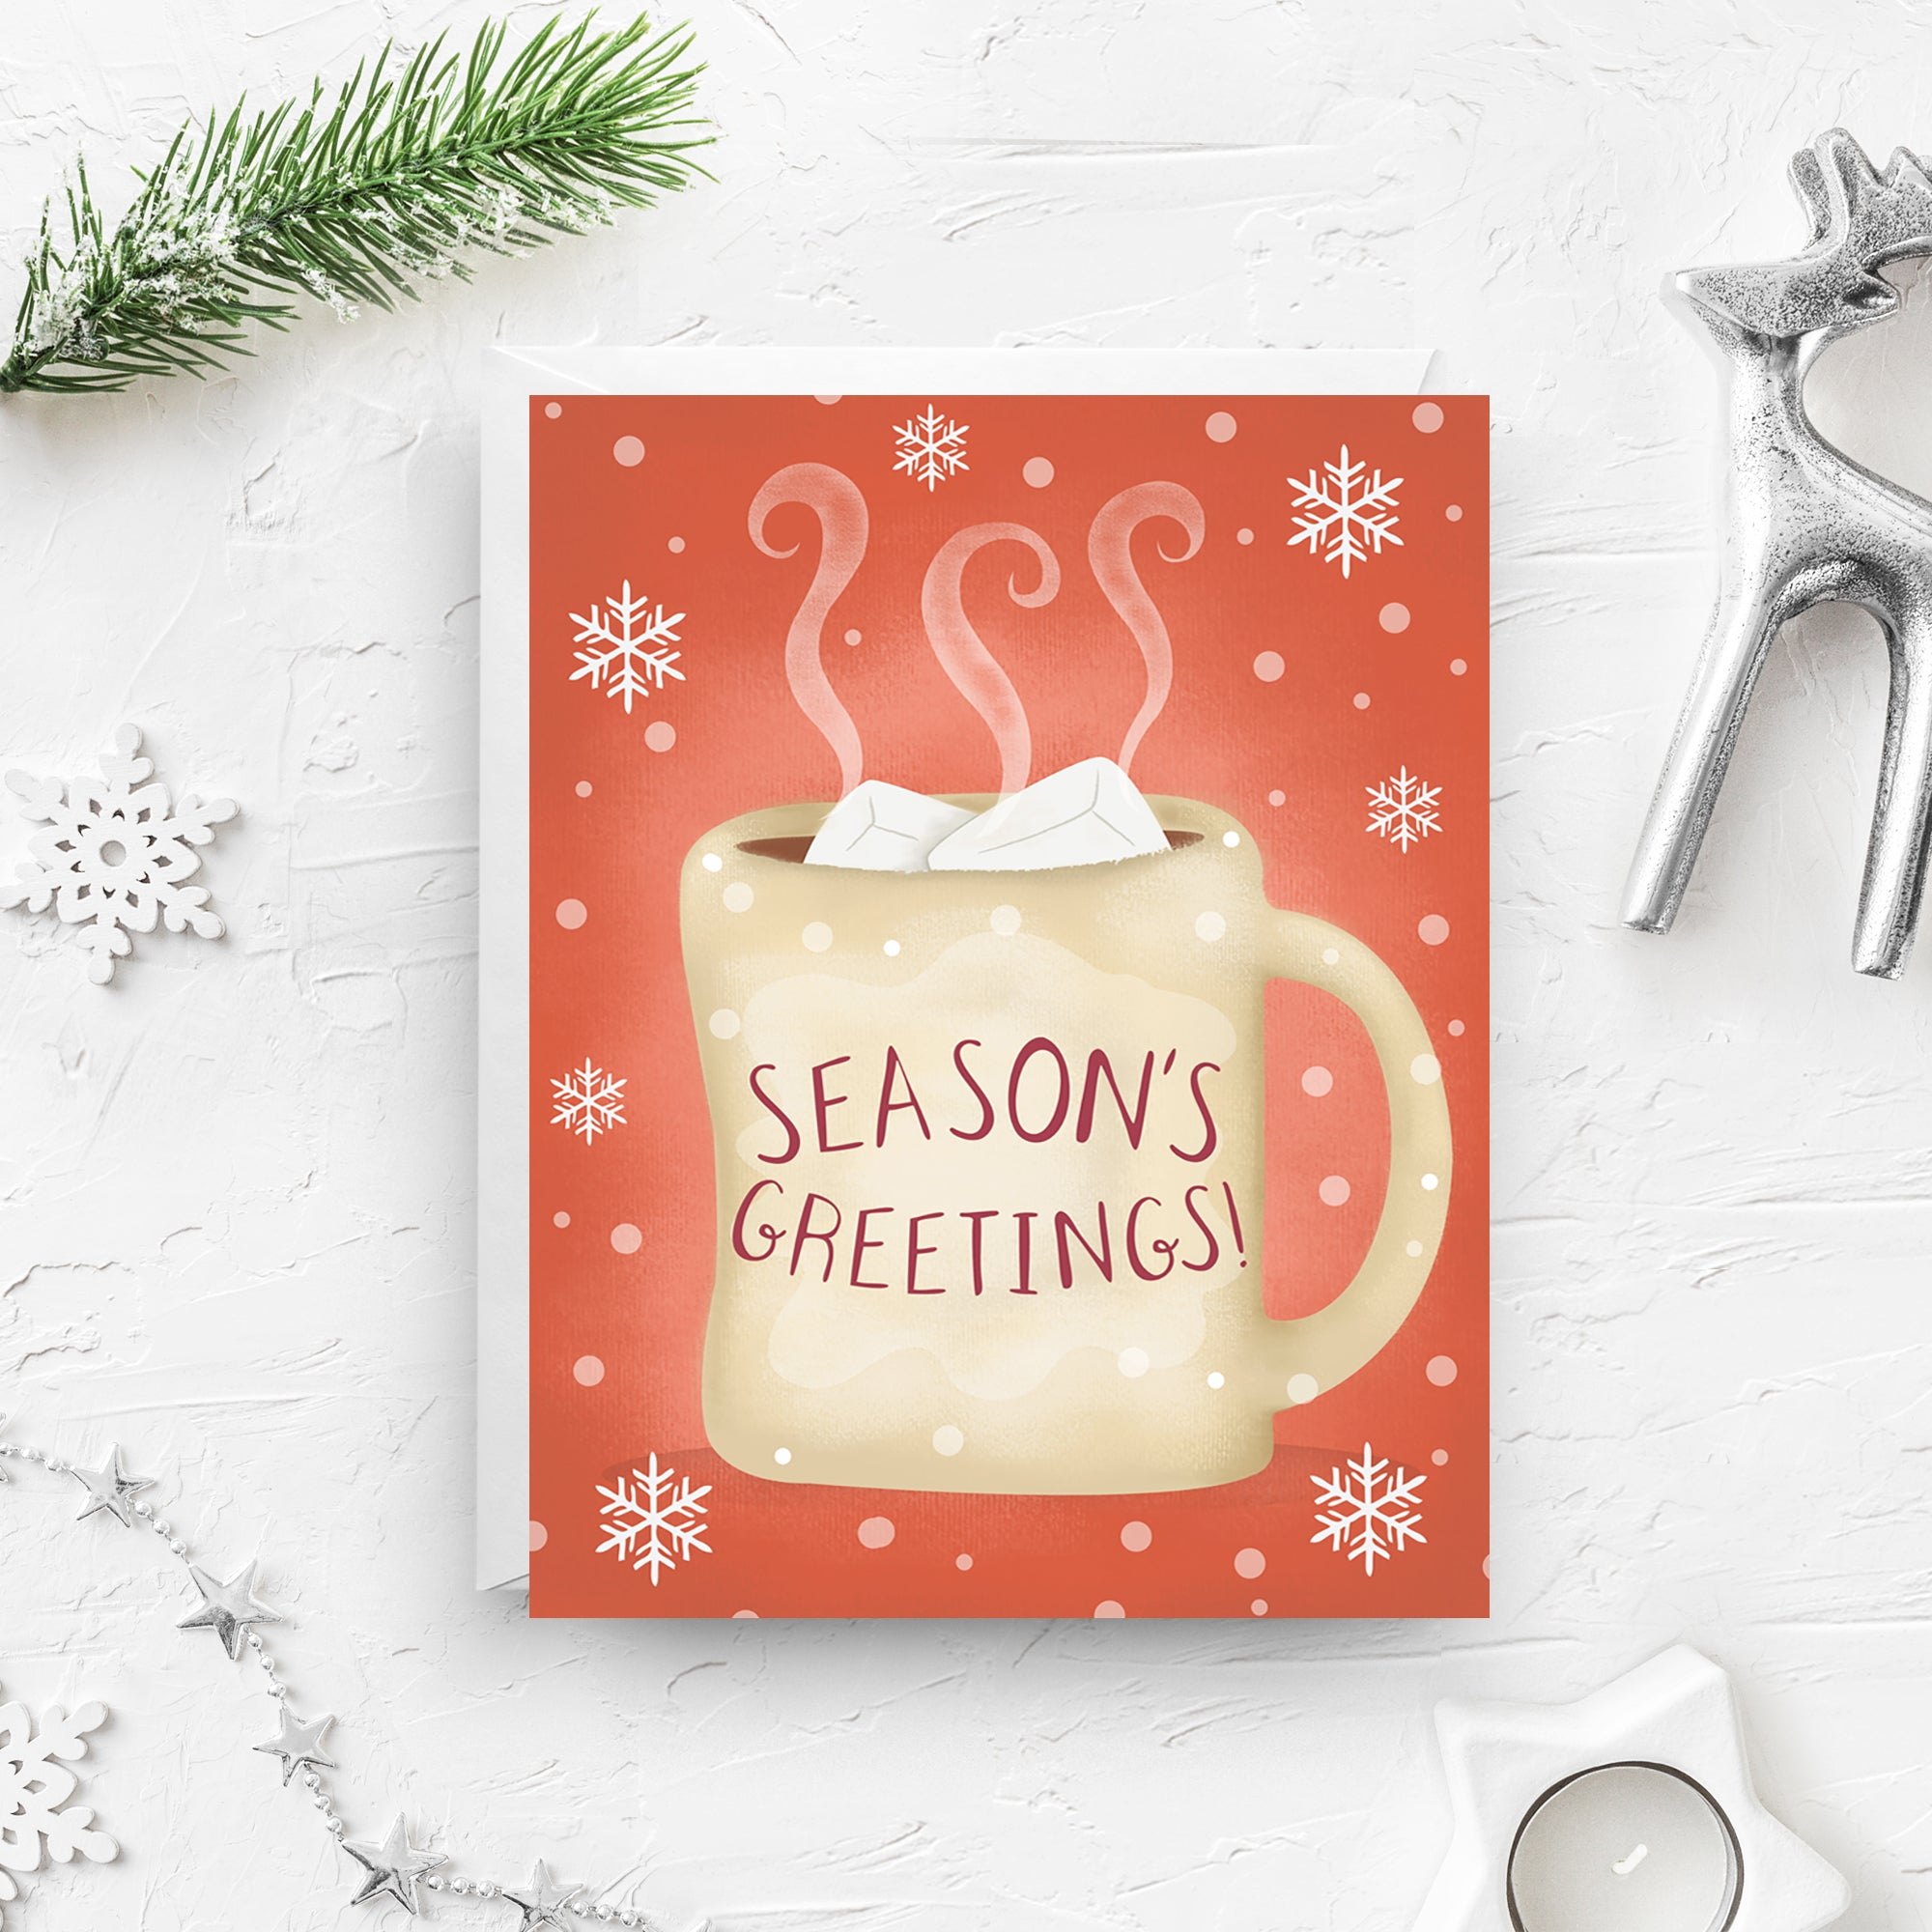 season's greetings, christmas card, hot chocolate card, hot cocoa card, merry christmas card, hot cocoa, christmas mug card, hot chocolate mug, hot cocoa mug, boxed set, on sale, black friday sale, cyber monday sale